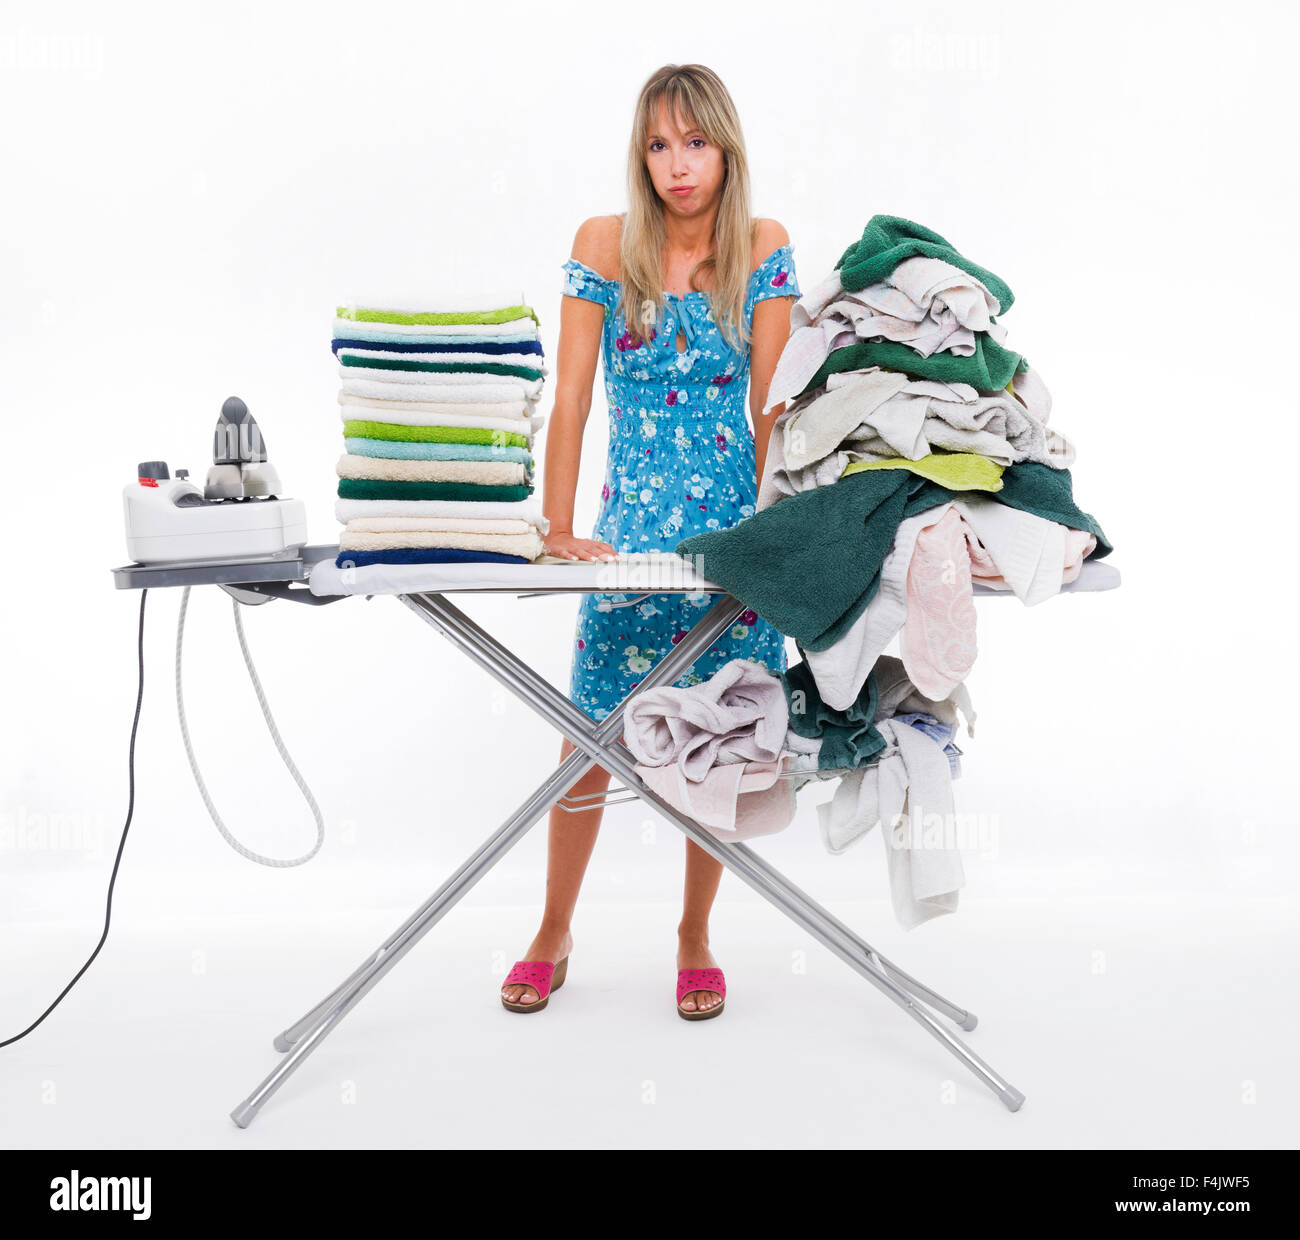 Woman with angry expression ironing on board many clothing - Stock Image